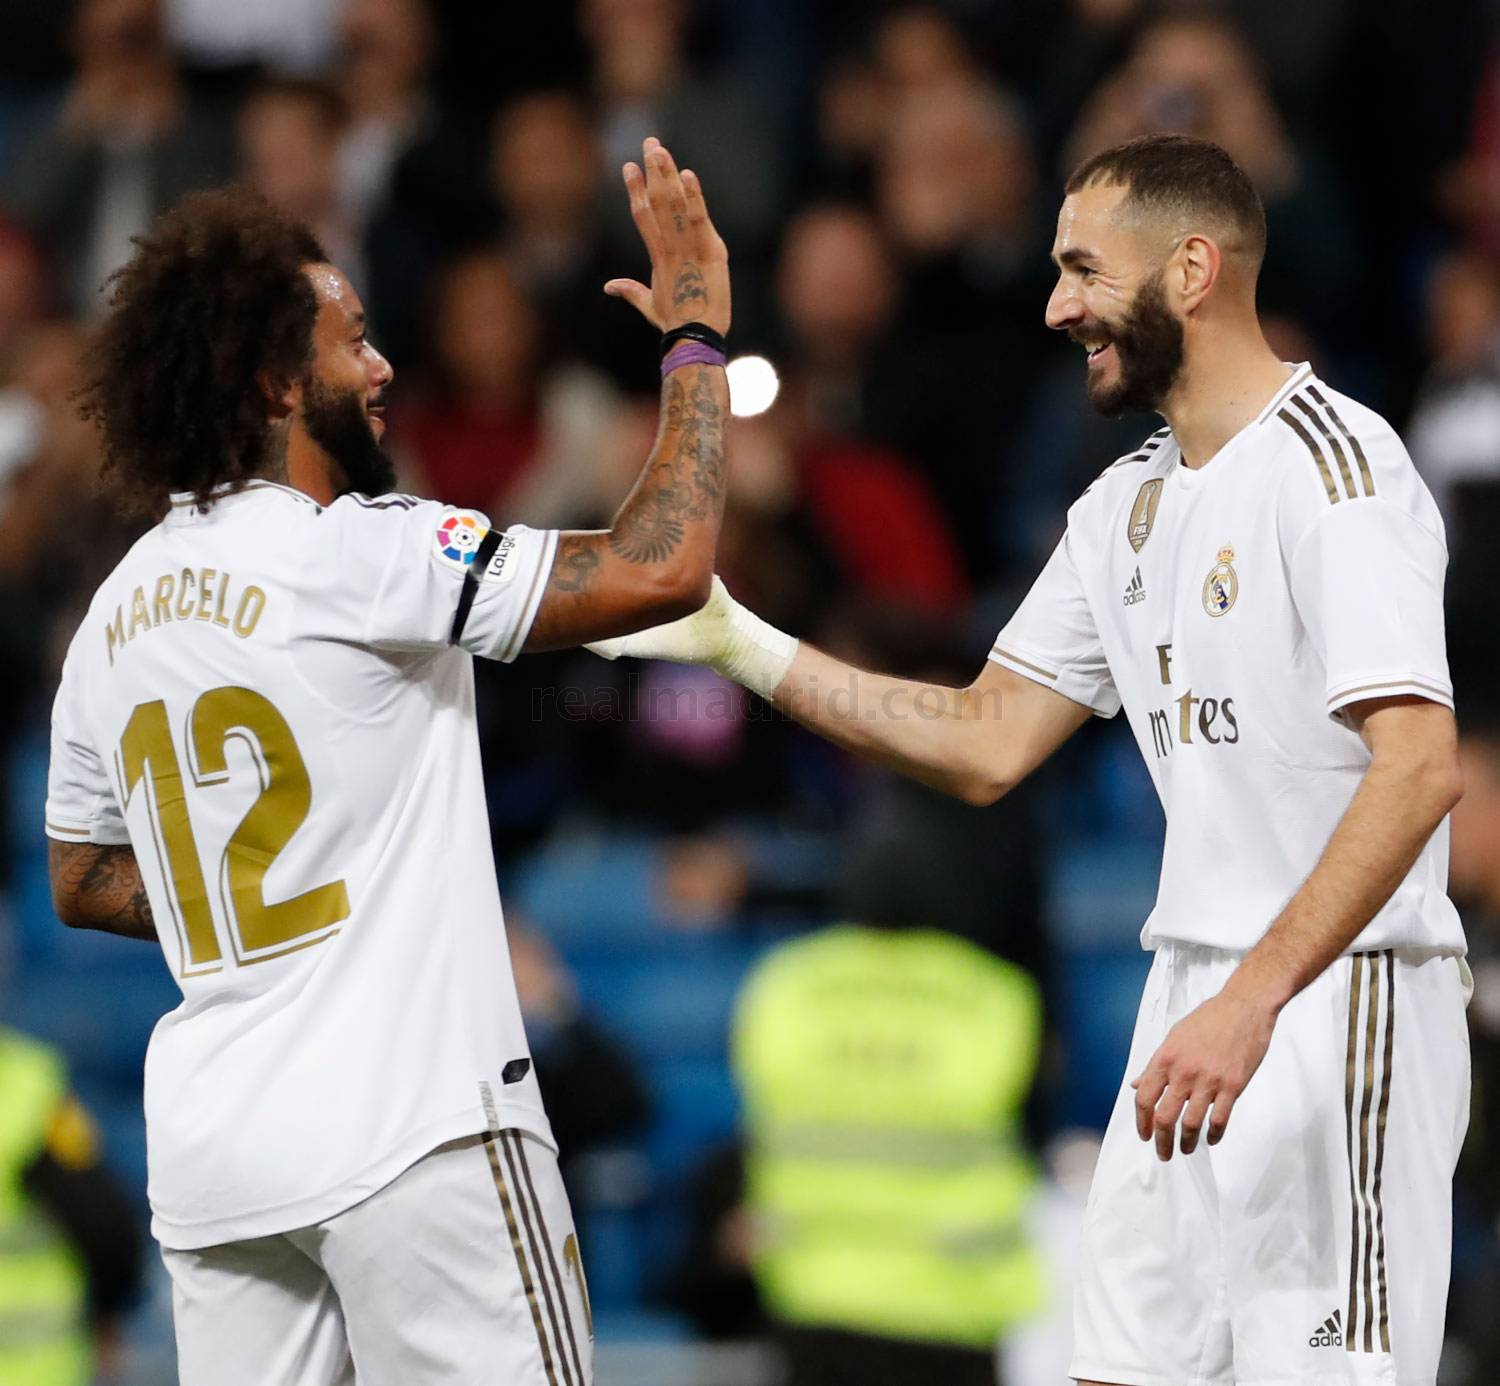 Real Madrid - Real Madrid - Leganés - 31-10-2019